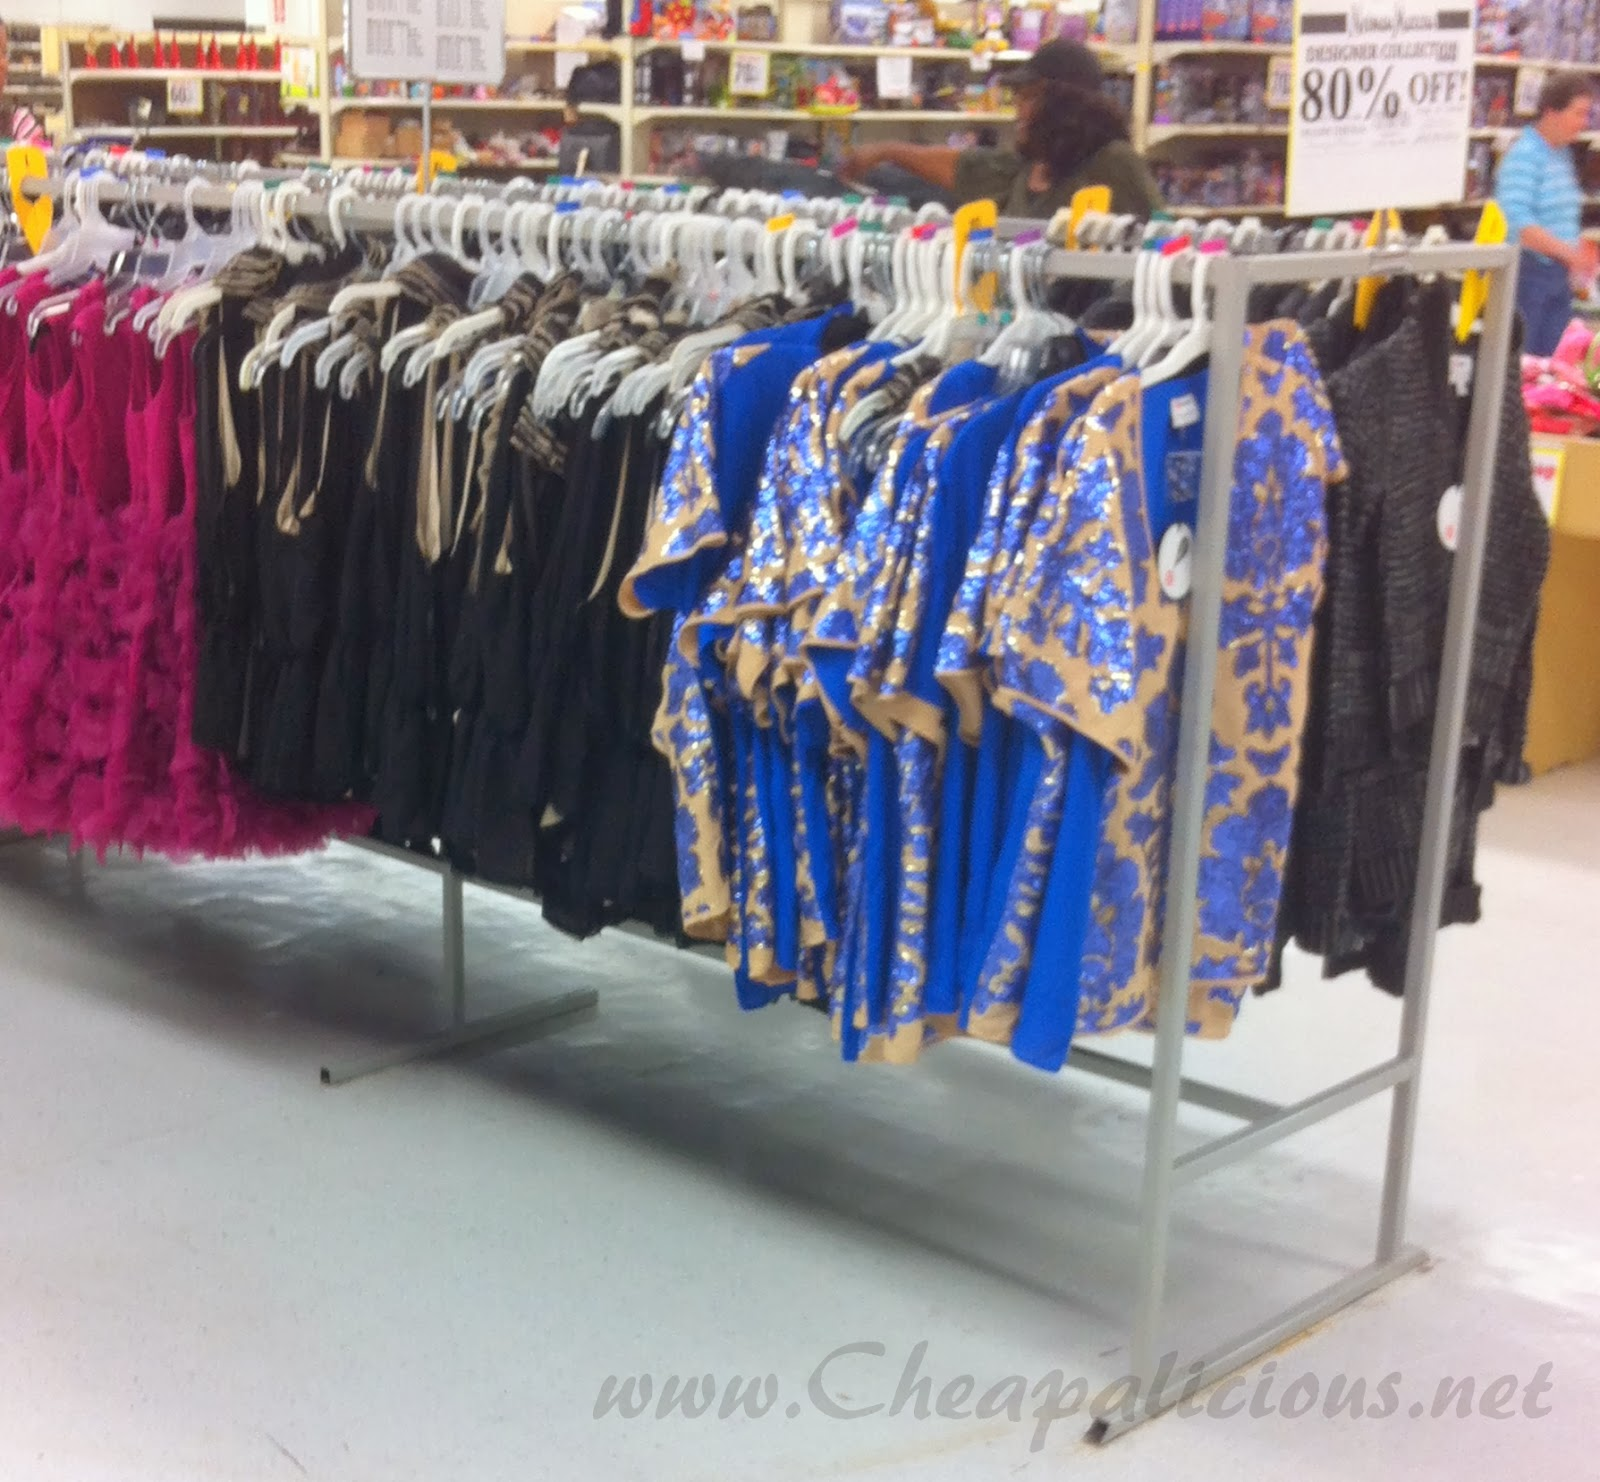 Dirt cheap store locations - I Spotted A Couple Of Racks Of The Neiman Marcus For Target Holiday Collection From Last Year For 80 Off The Sequined Tracy Reese Top Was 16